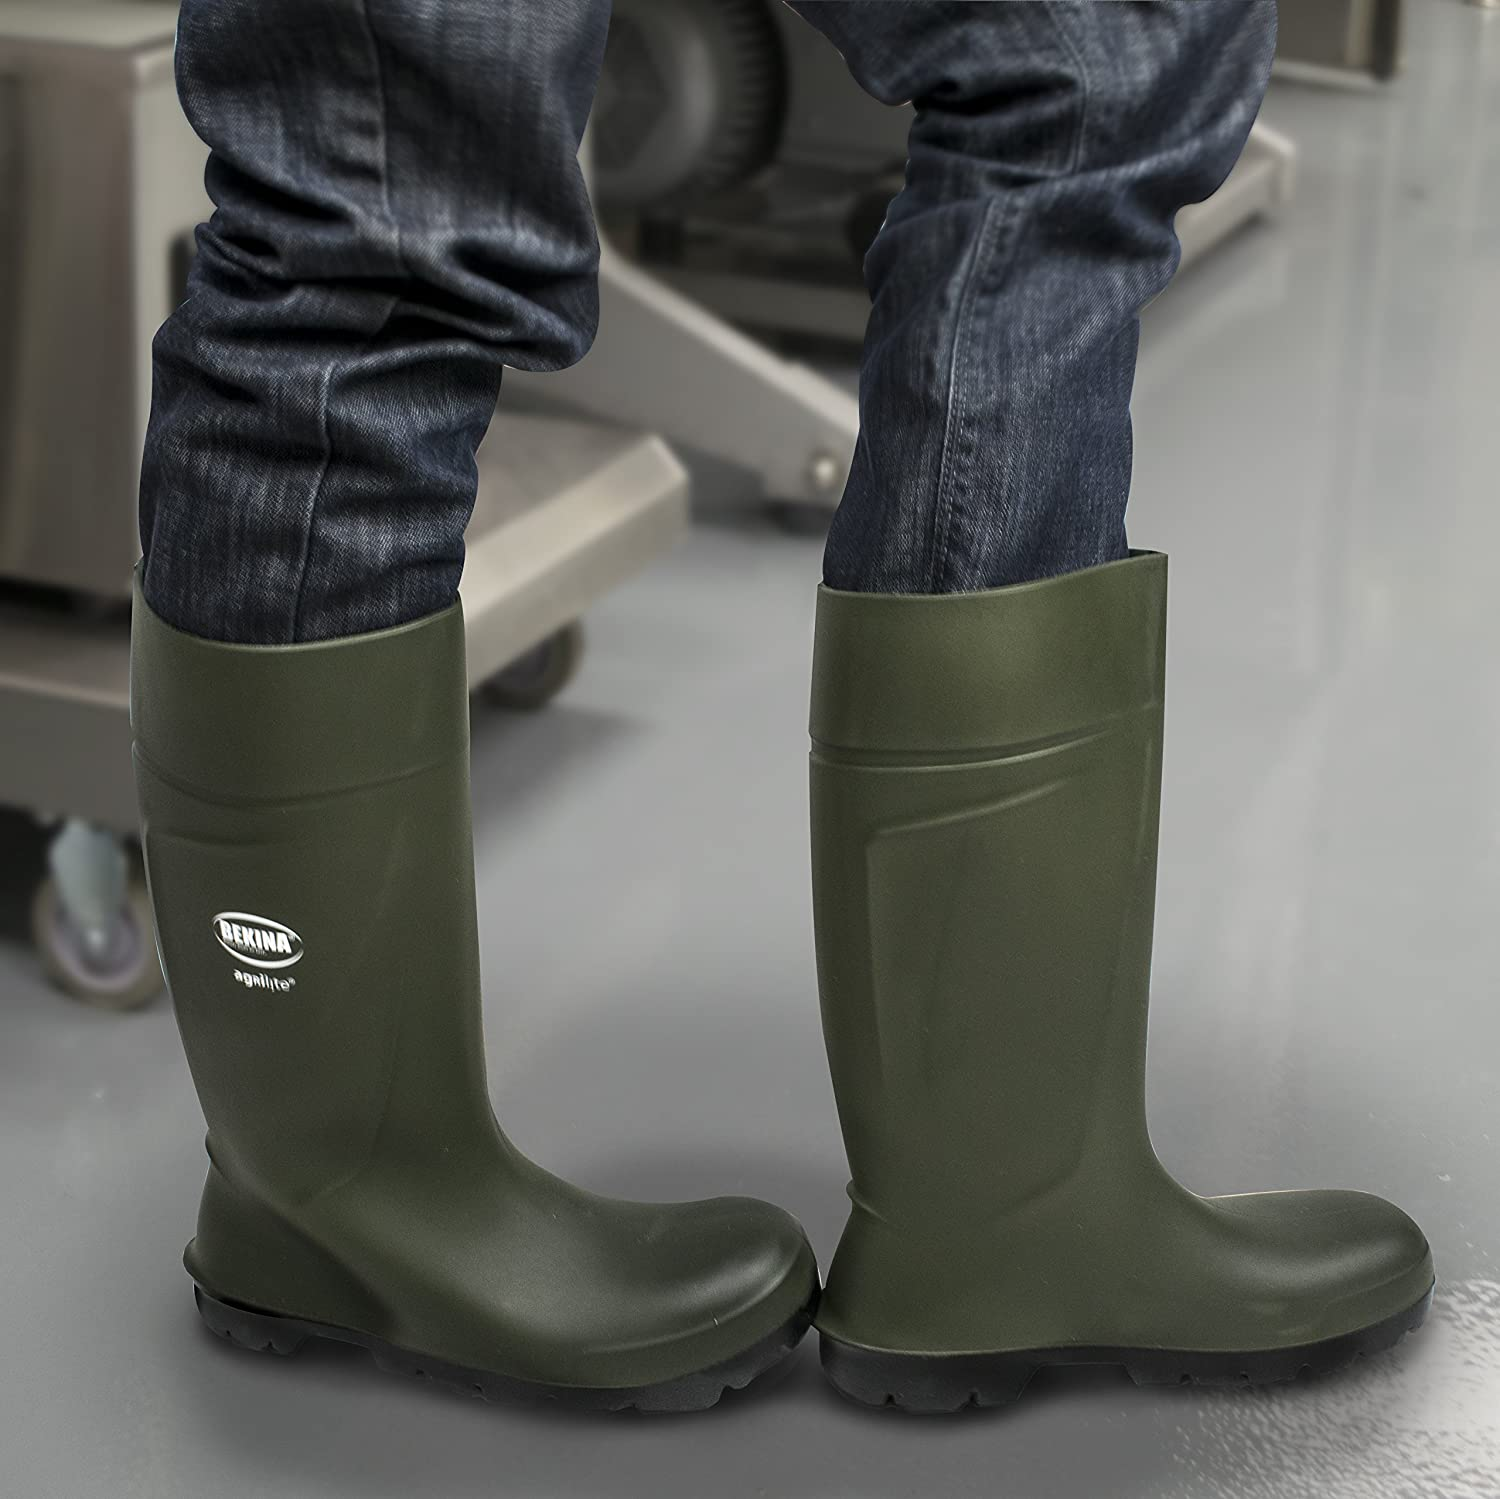 Size 5 Green StepliteX UltraSource Bekina Boots